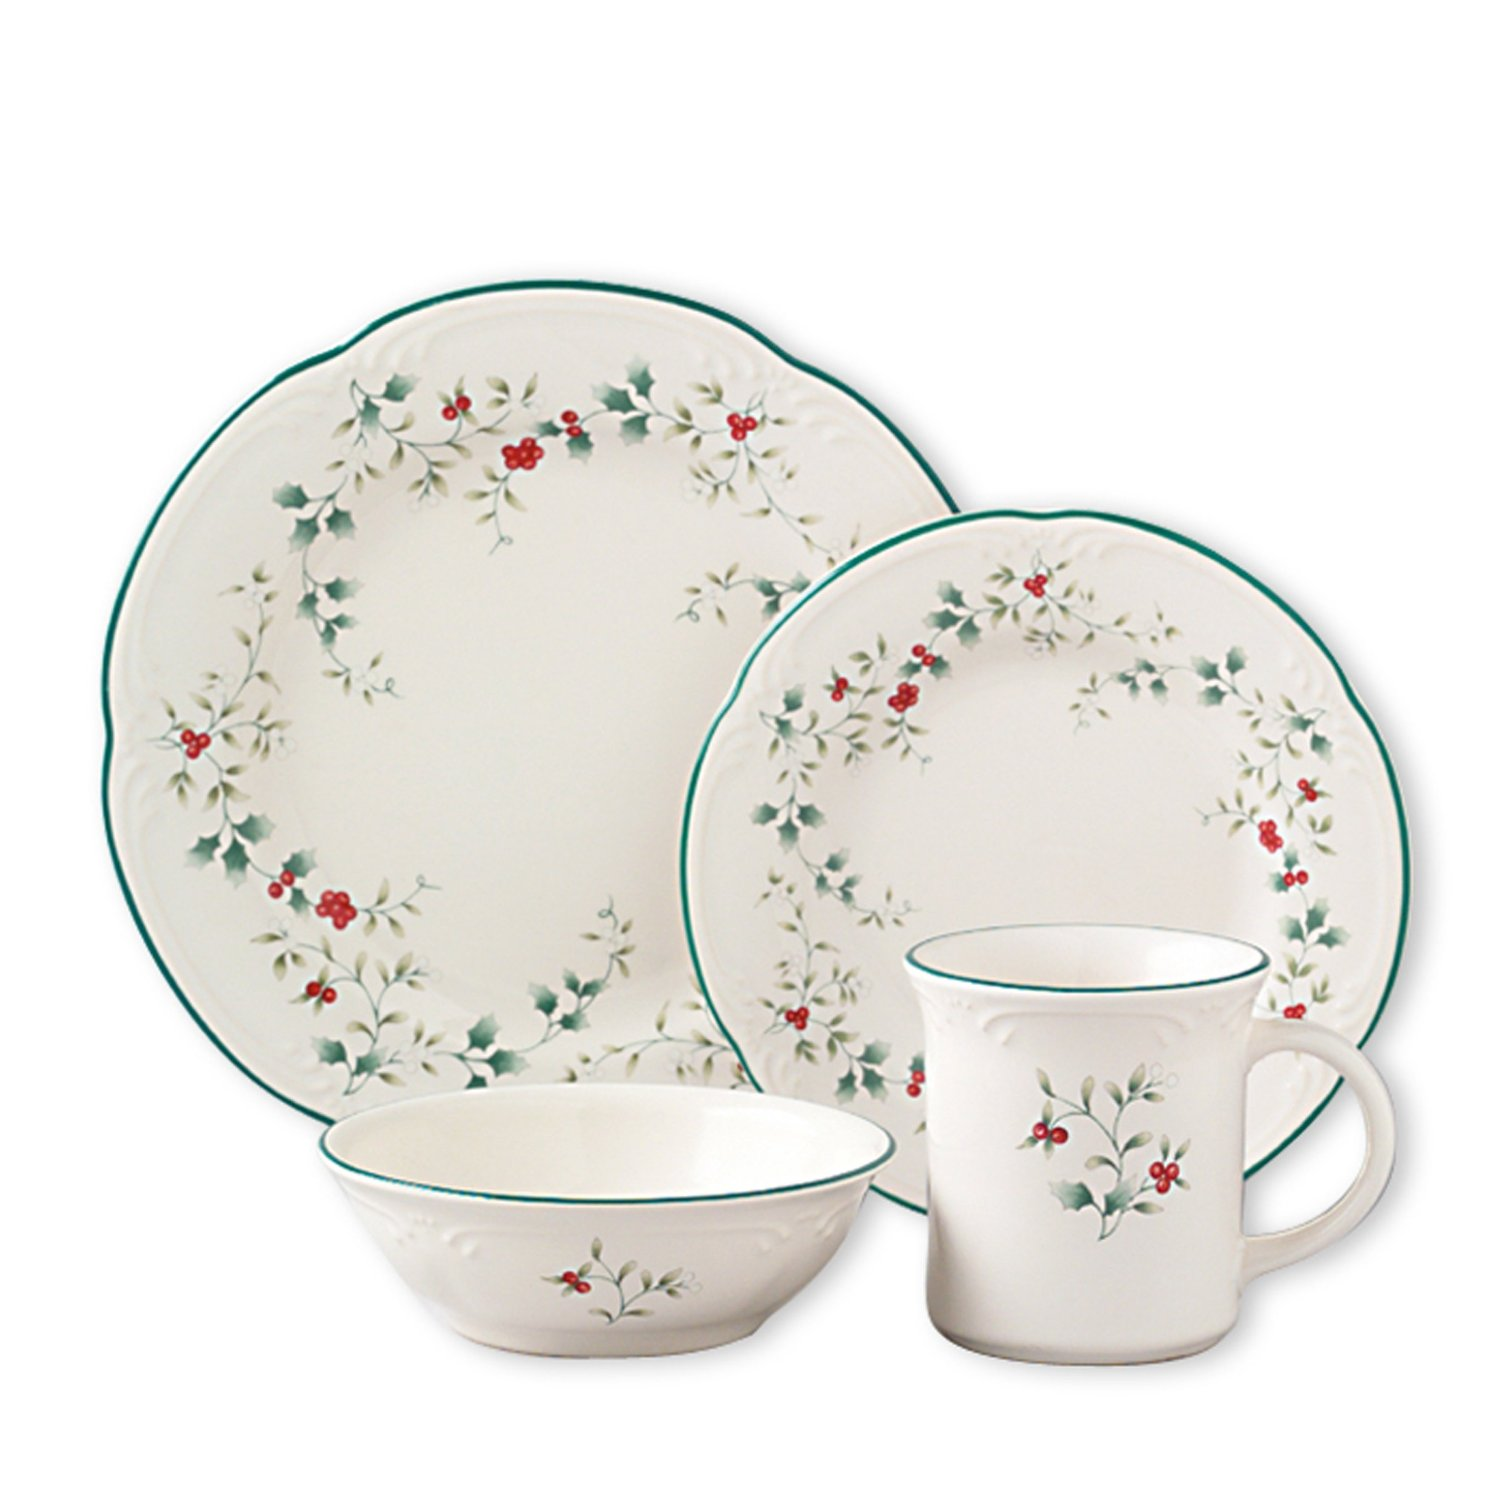 Pfaltzgraff Winterberry Dinnerware Set u2013 Microwave and Dishwasher Safe Stoneware Matching Serving Dishes Flatware  sc 1 st  TopProducts.com & Best Christmas Dinnerware Set Reviews of 2018 at TopProducts.com